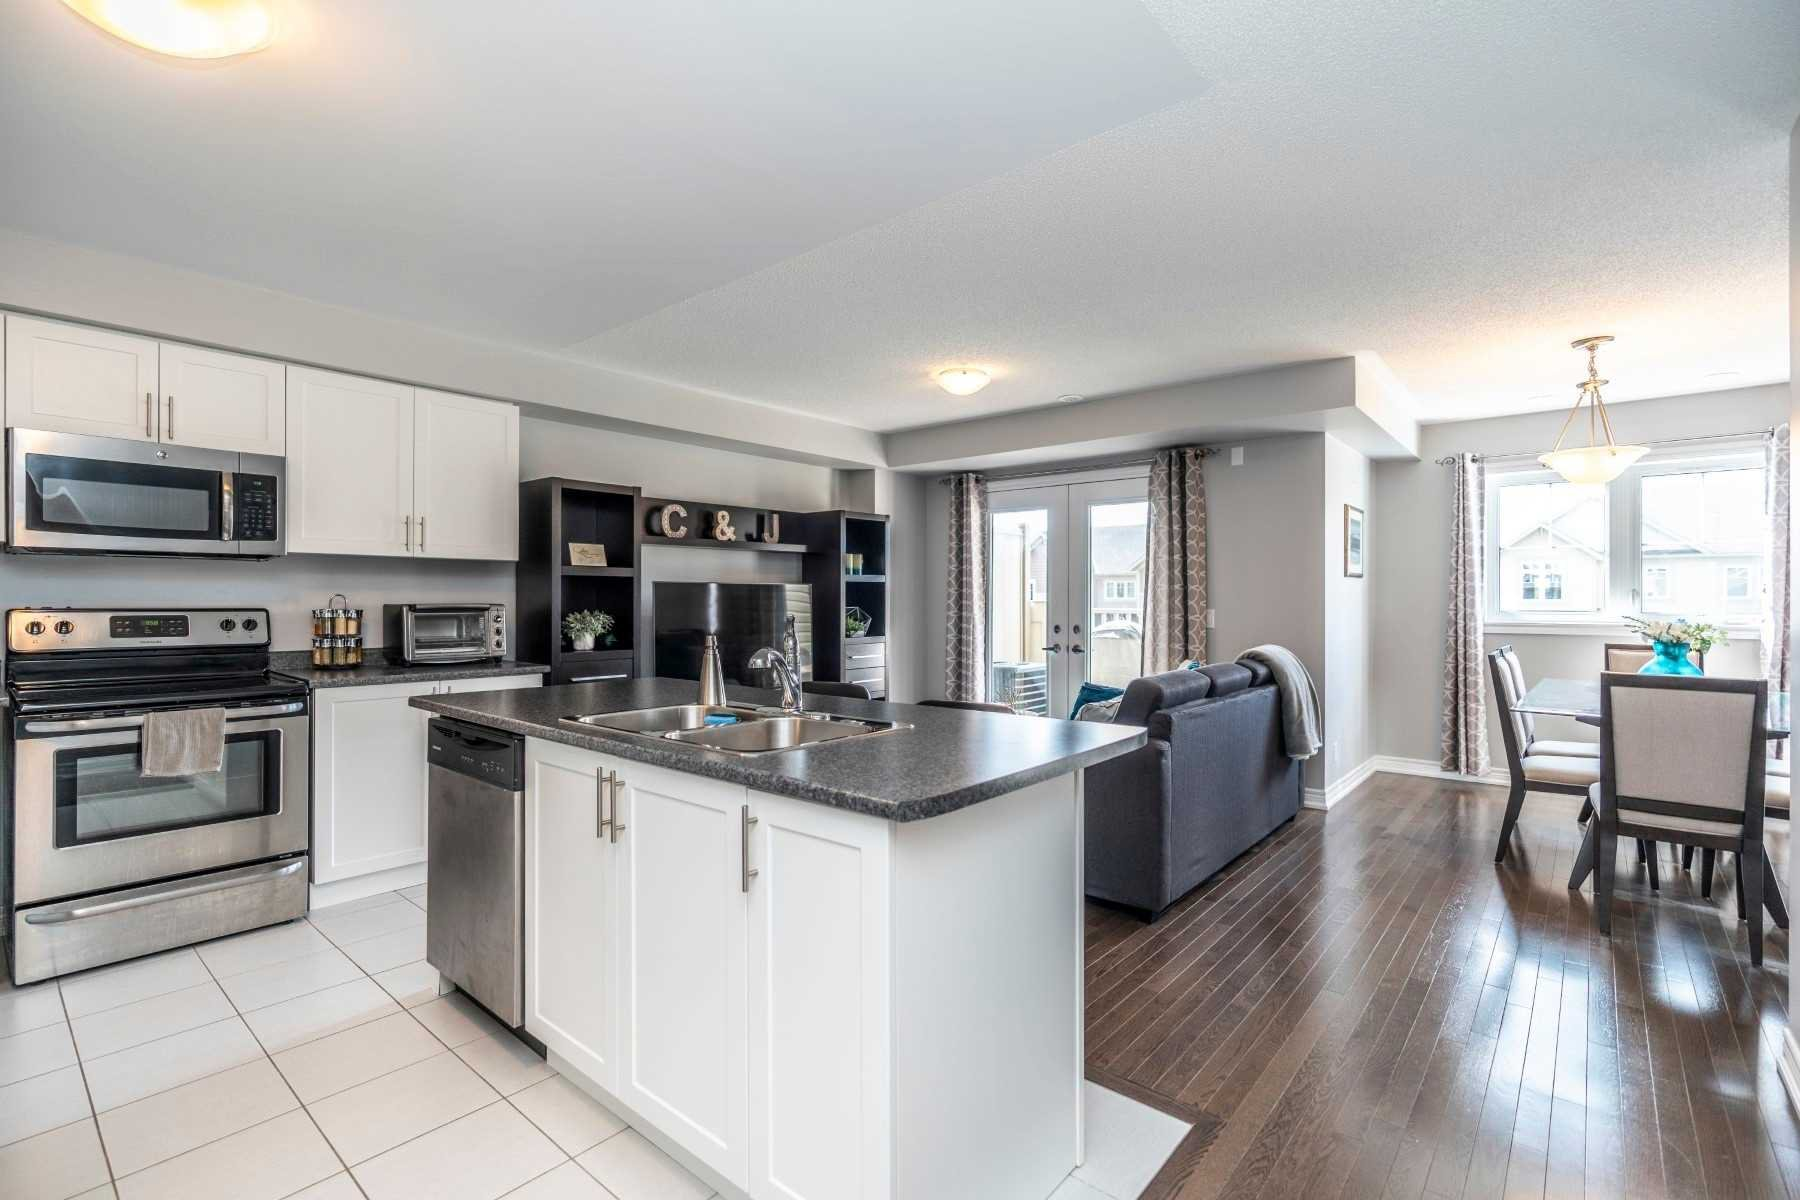 Photo 3: Photos: 15 Great Gabe Crescent in Oshawa: Windfields House (3-Storey) for sale : MLS®# E4551786